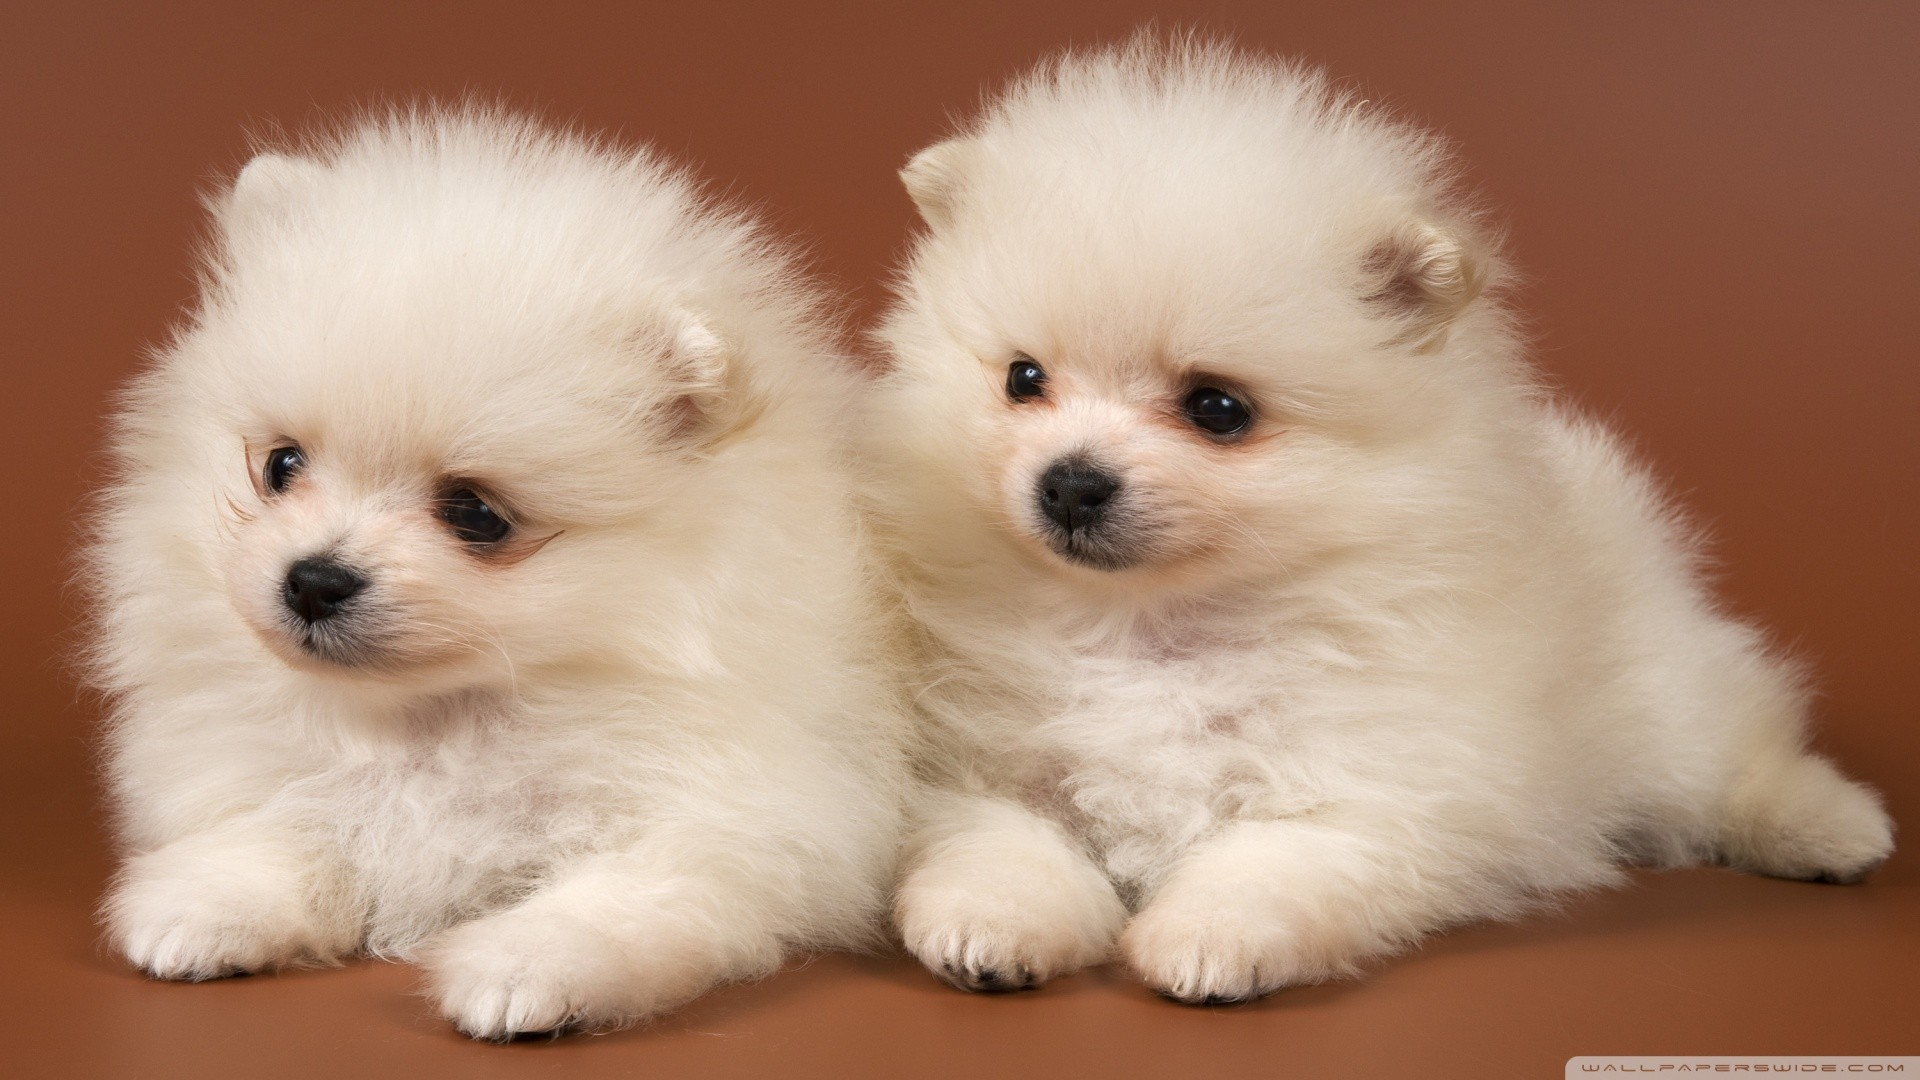 puppies wallpaper ·① download free beautiful backgrounds for